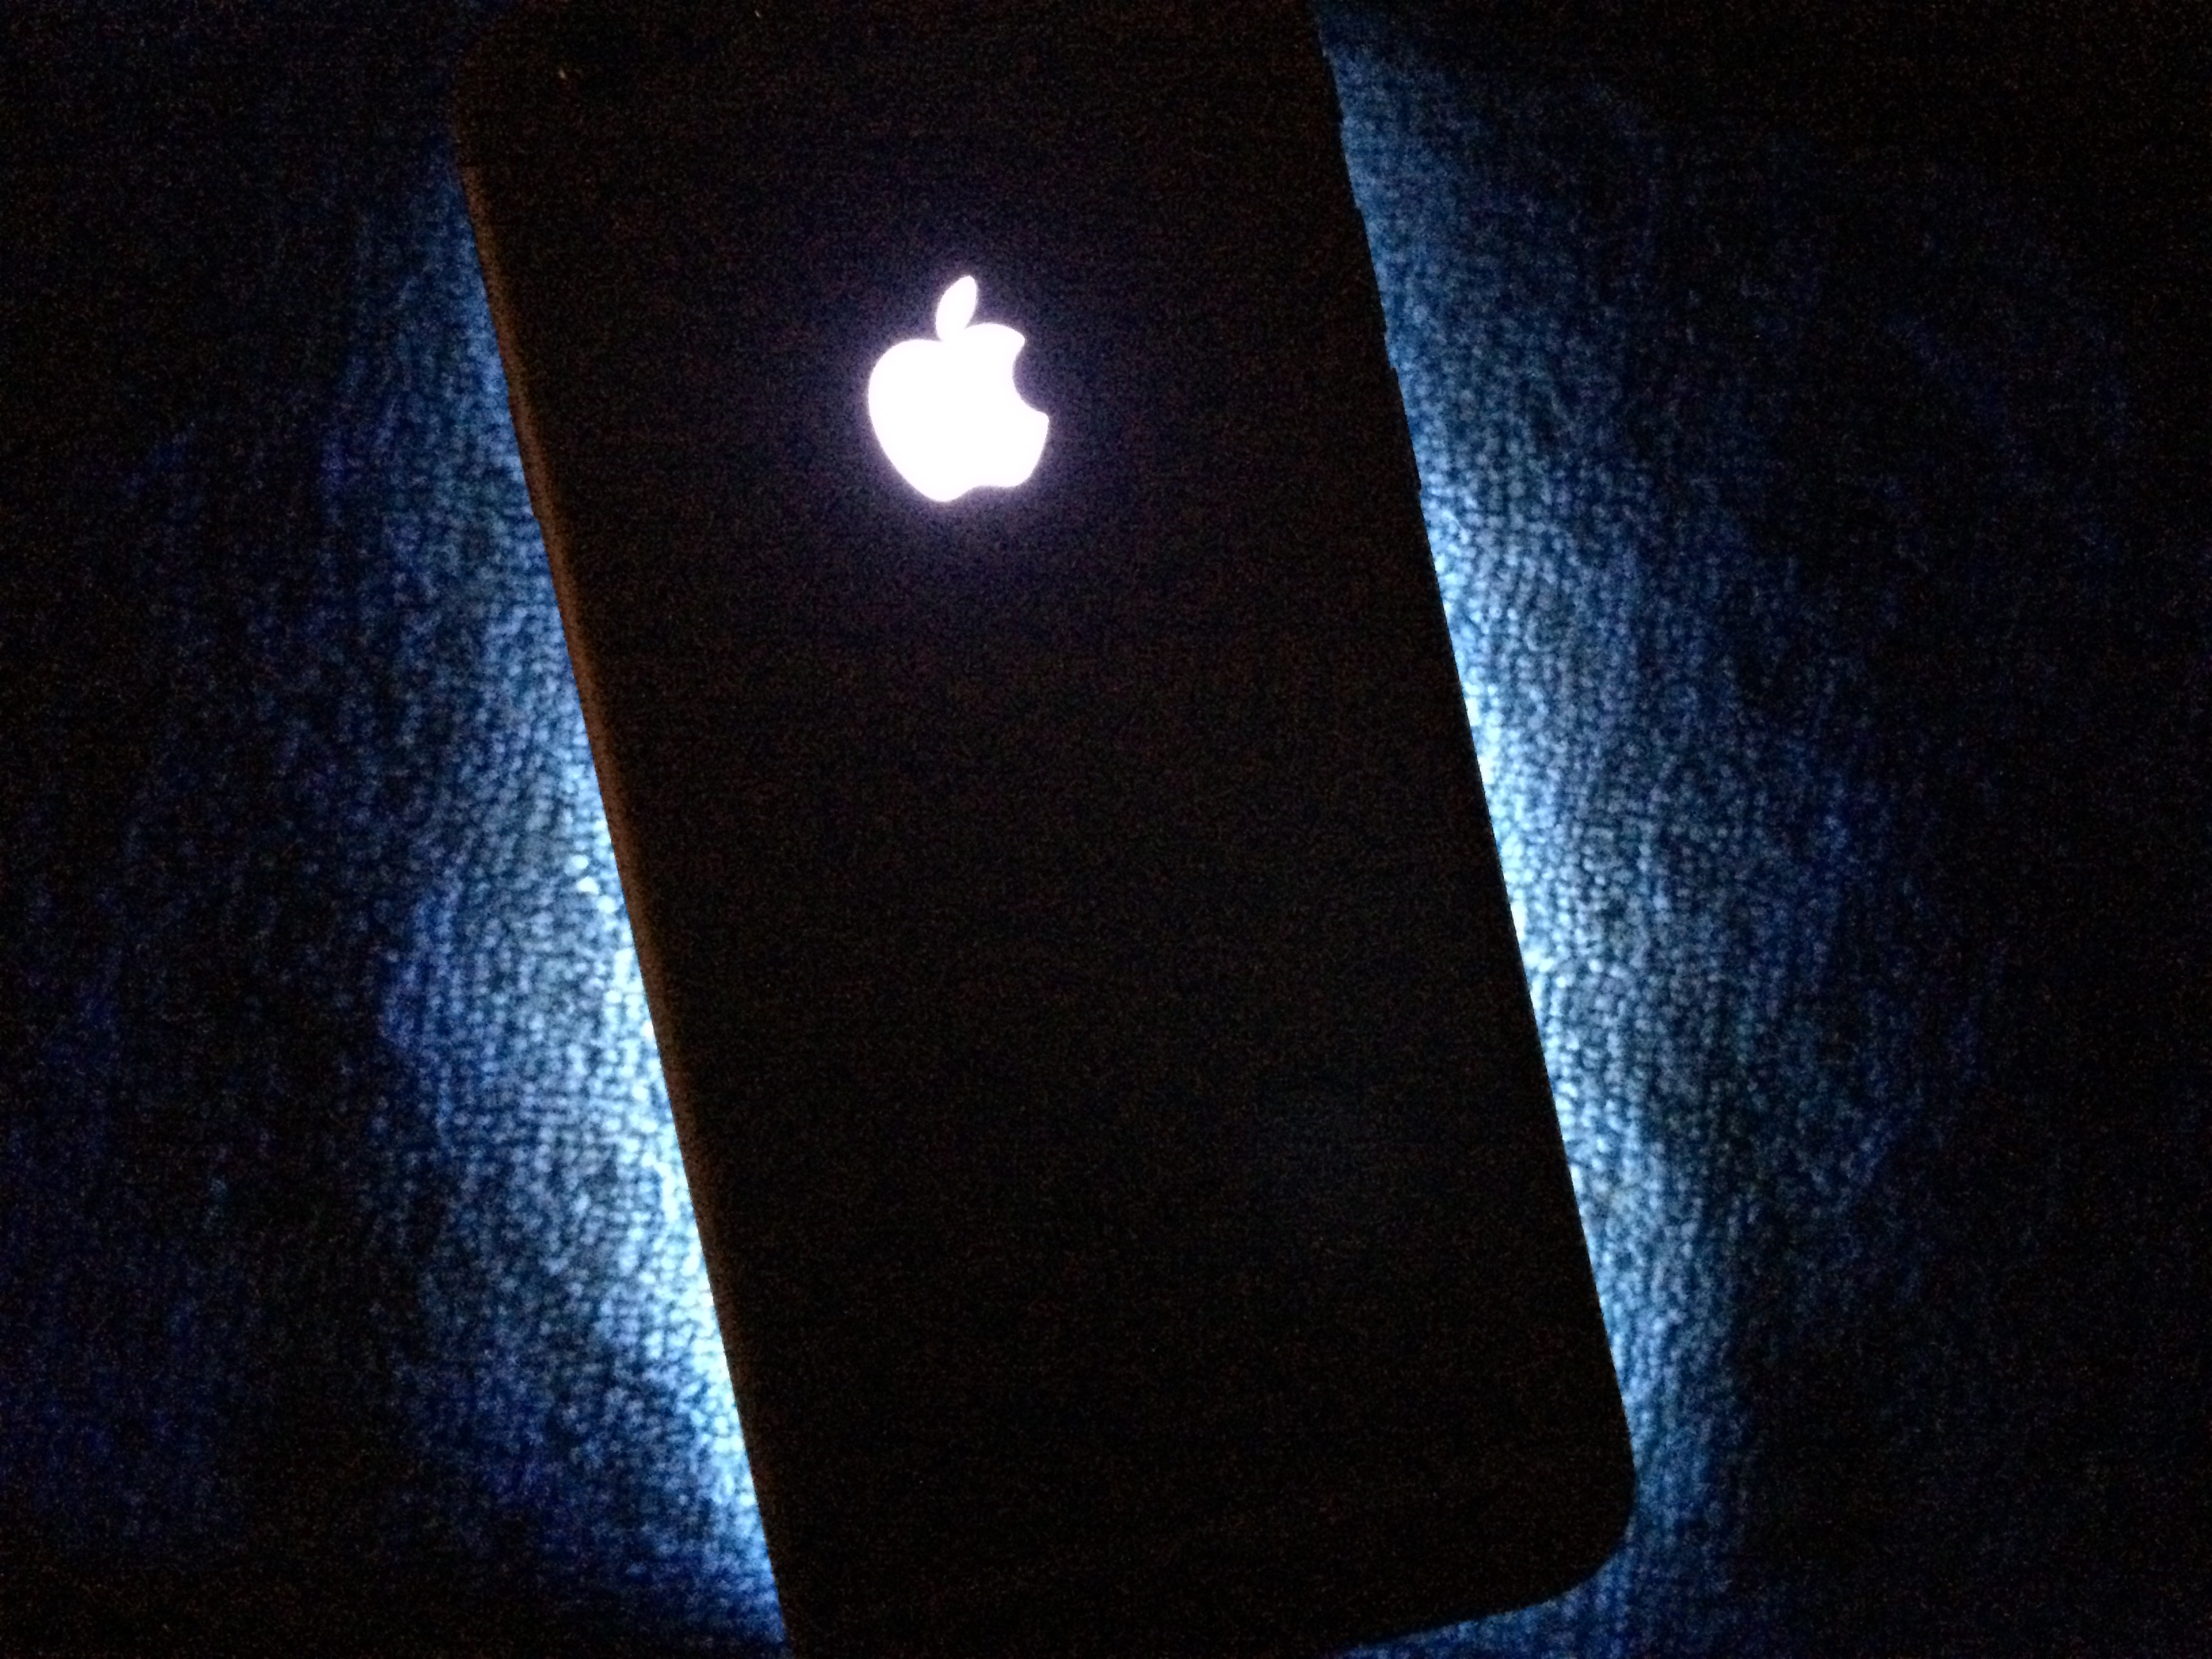 TheUnlockr Glowing Apple logo mod iDownloadblog 11